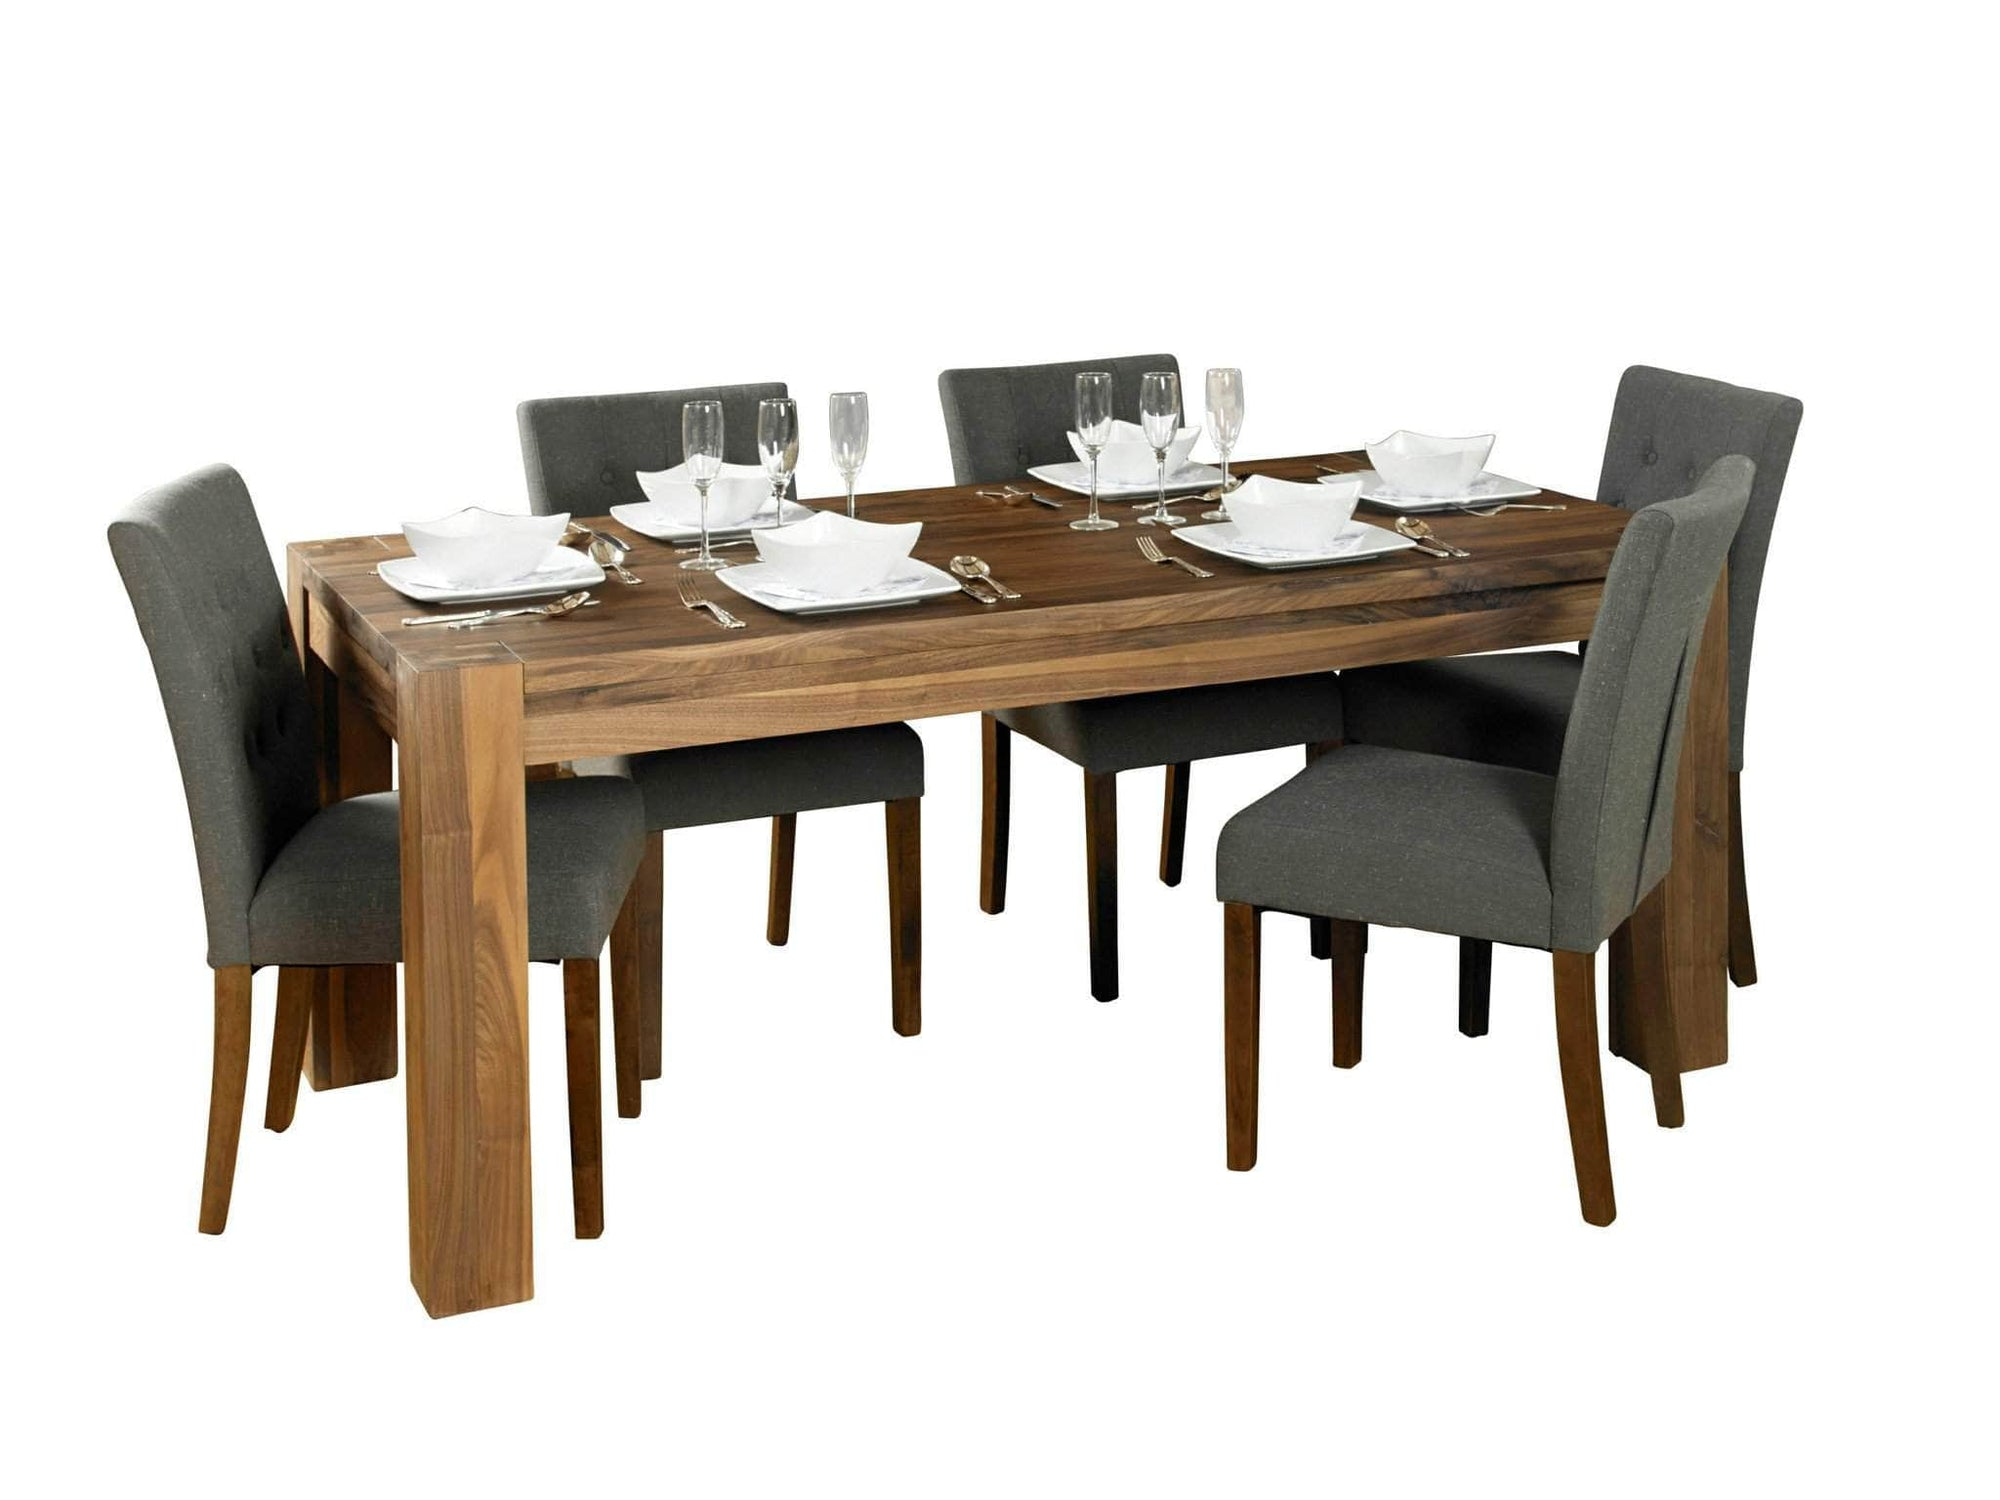 Solid walnut dining set, for the Sola or Orsina furniture ranges